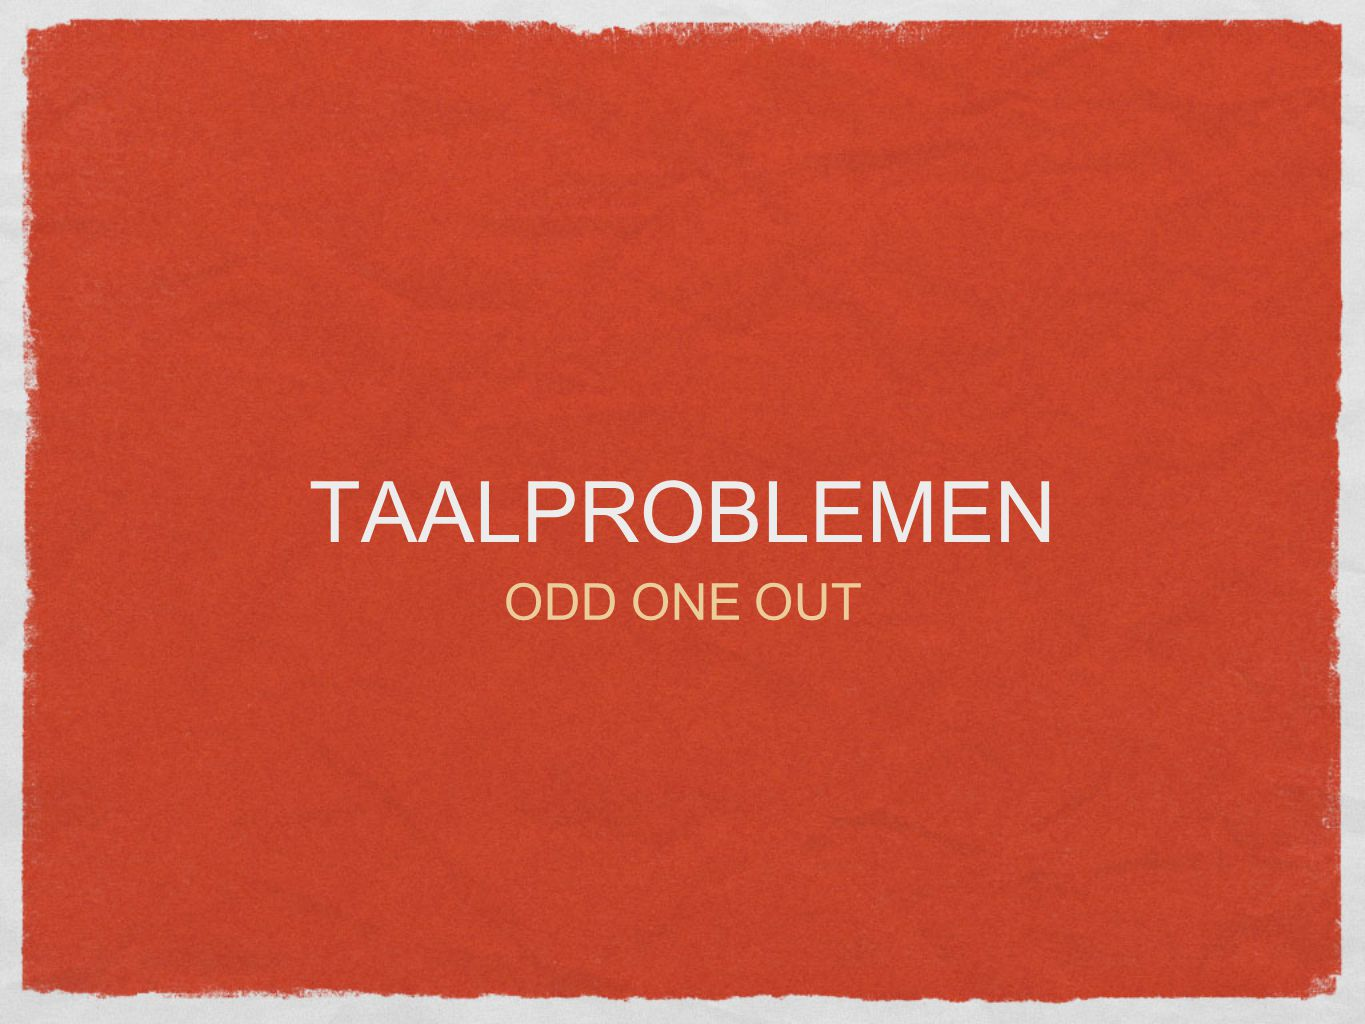 TAALPROBLEMEN ODD ONE OUT